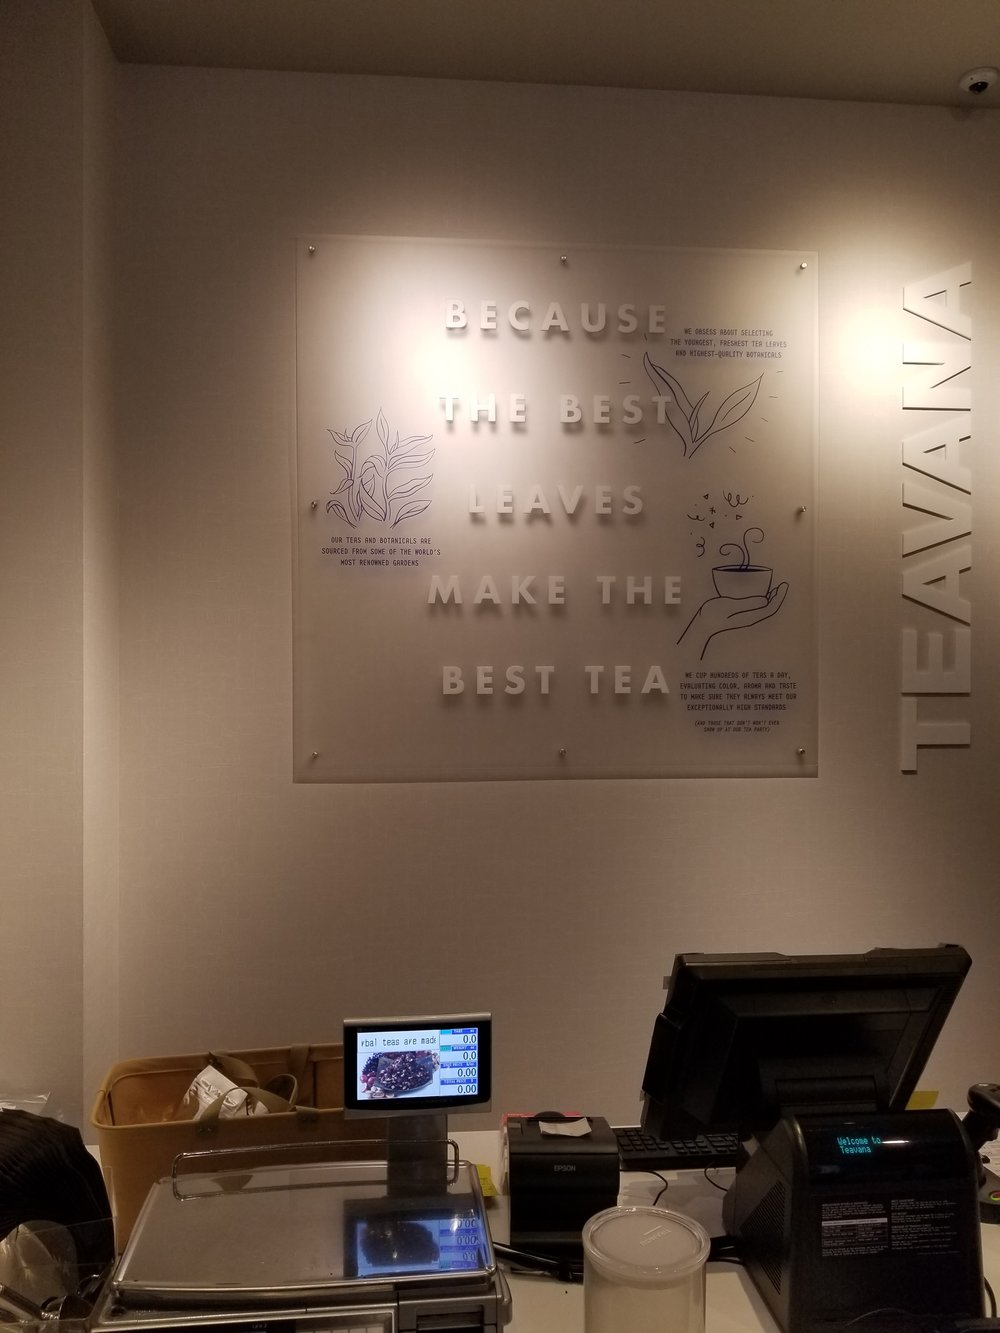 Bellevue Square Teavana 23 Sept 2017 - 2.jpg